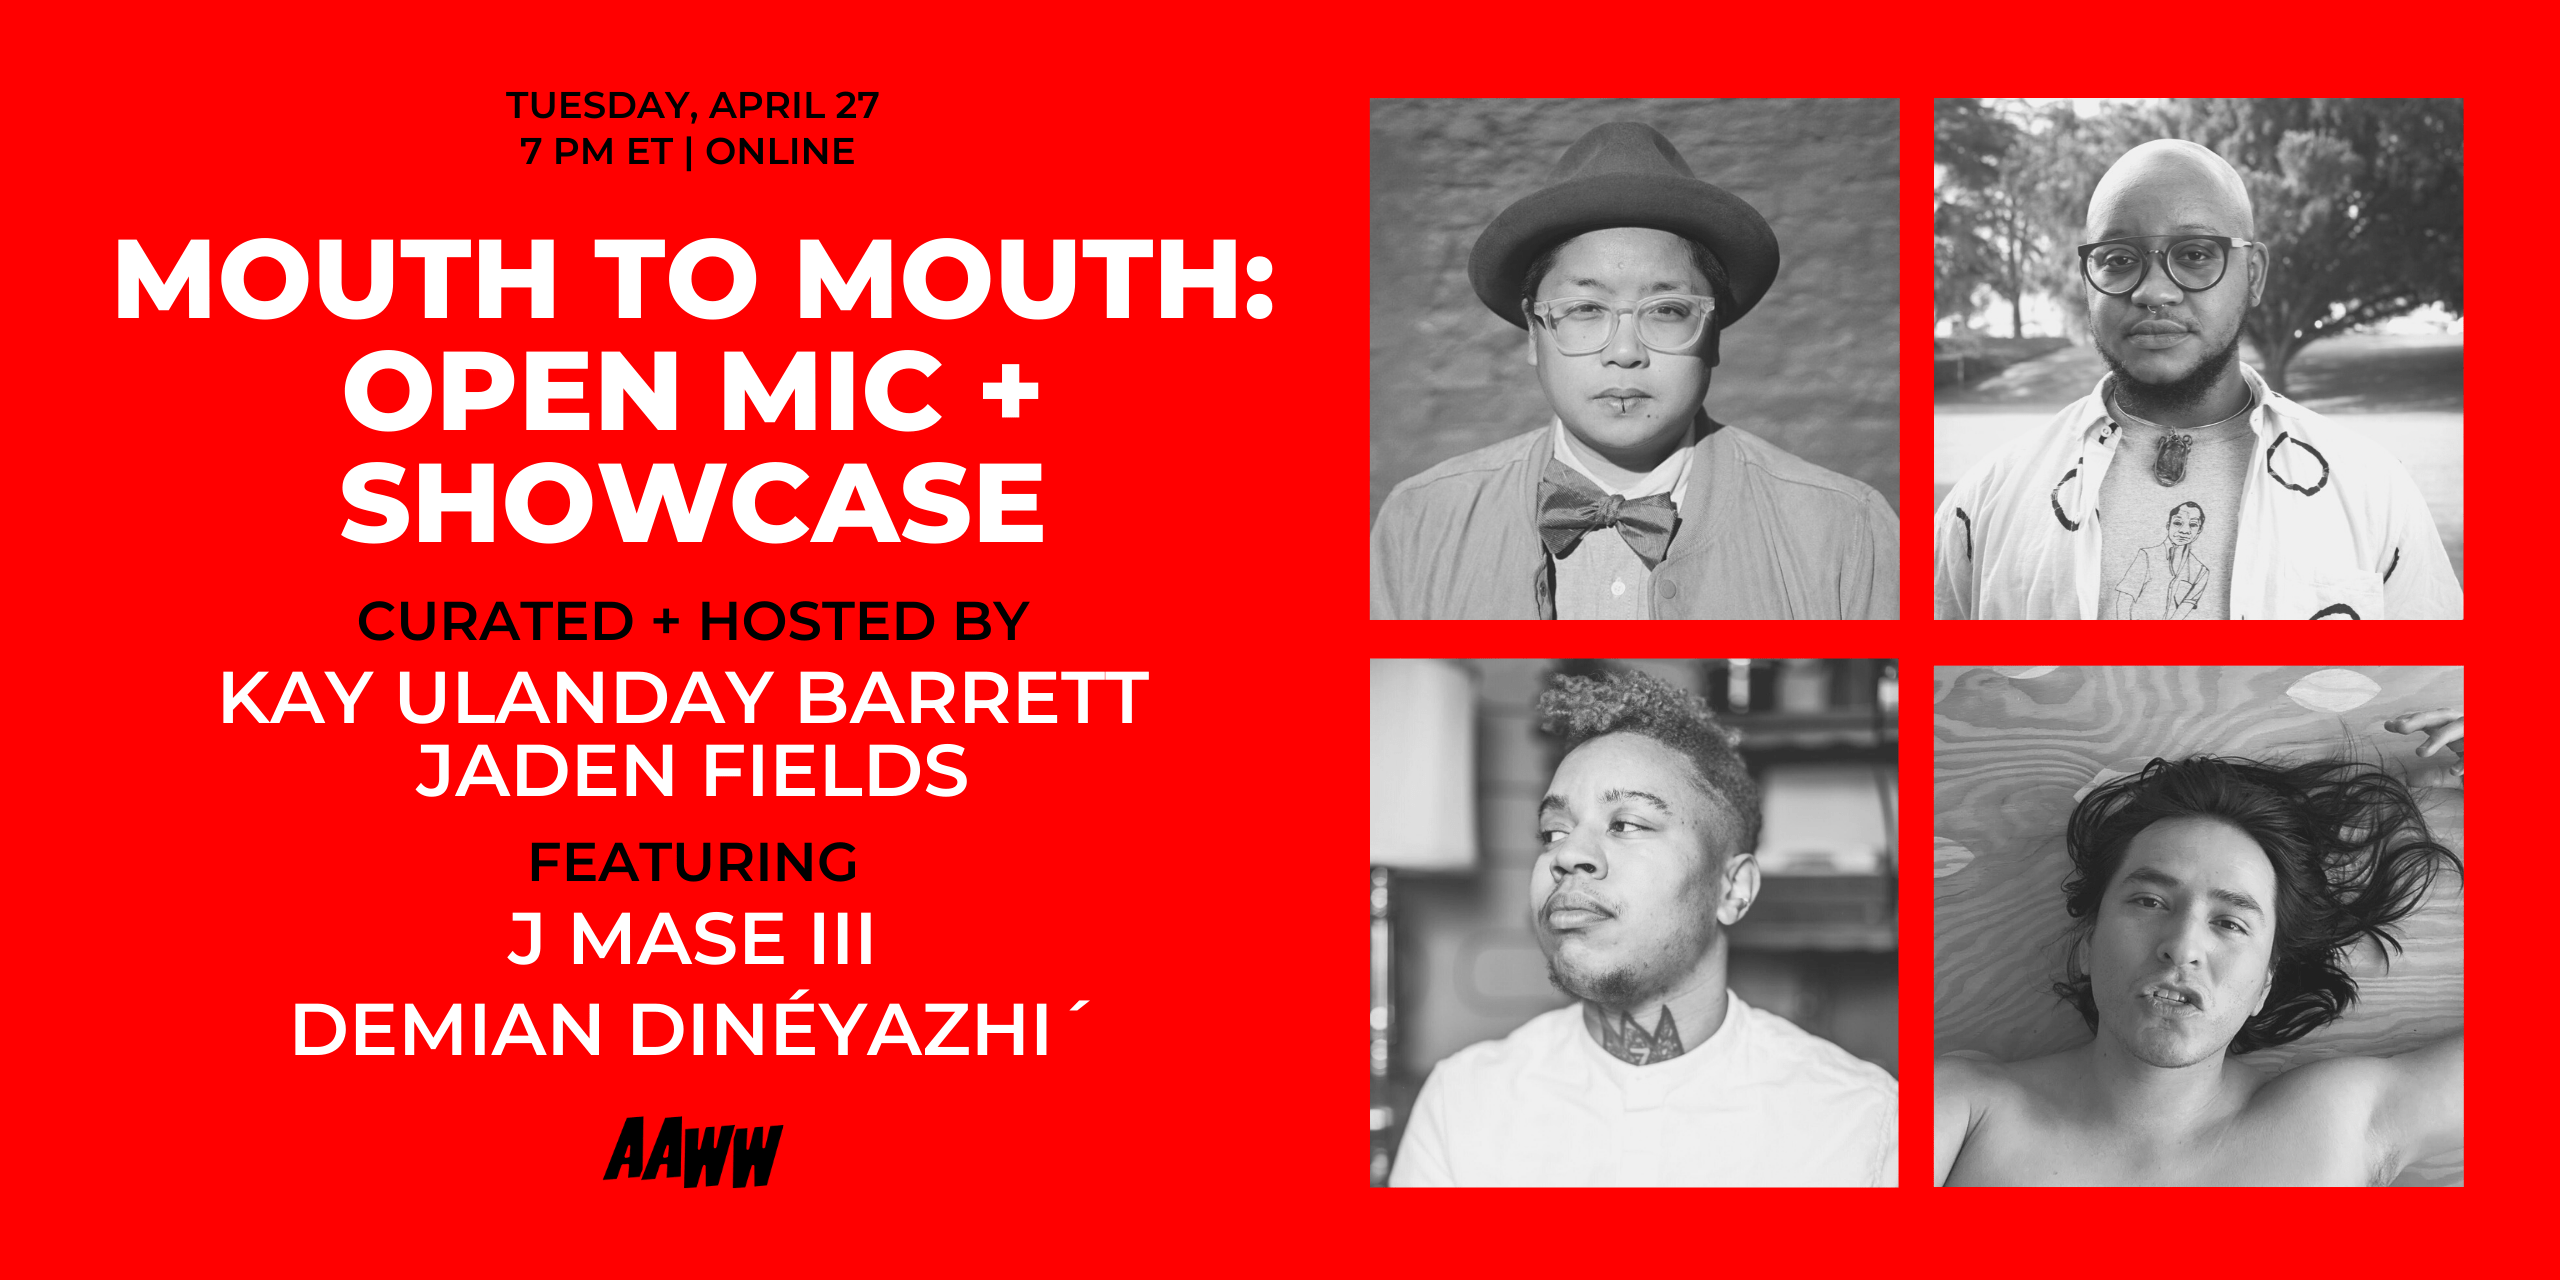 Mouth to Mouth: Open Mic + Showcase